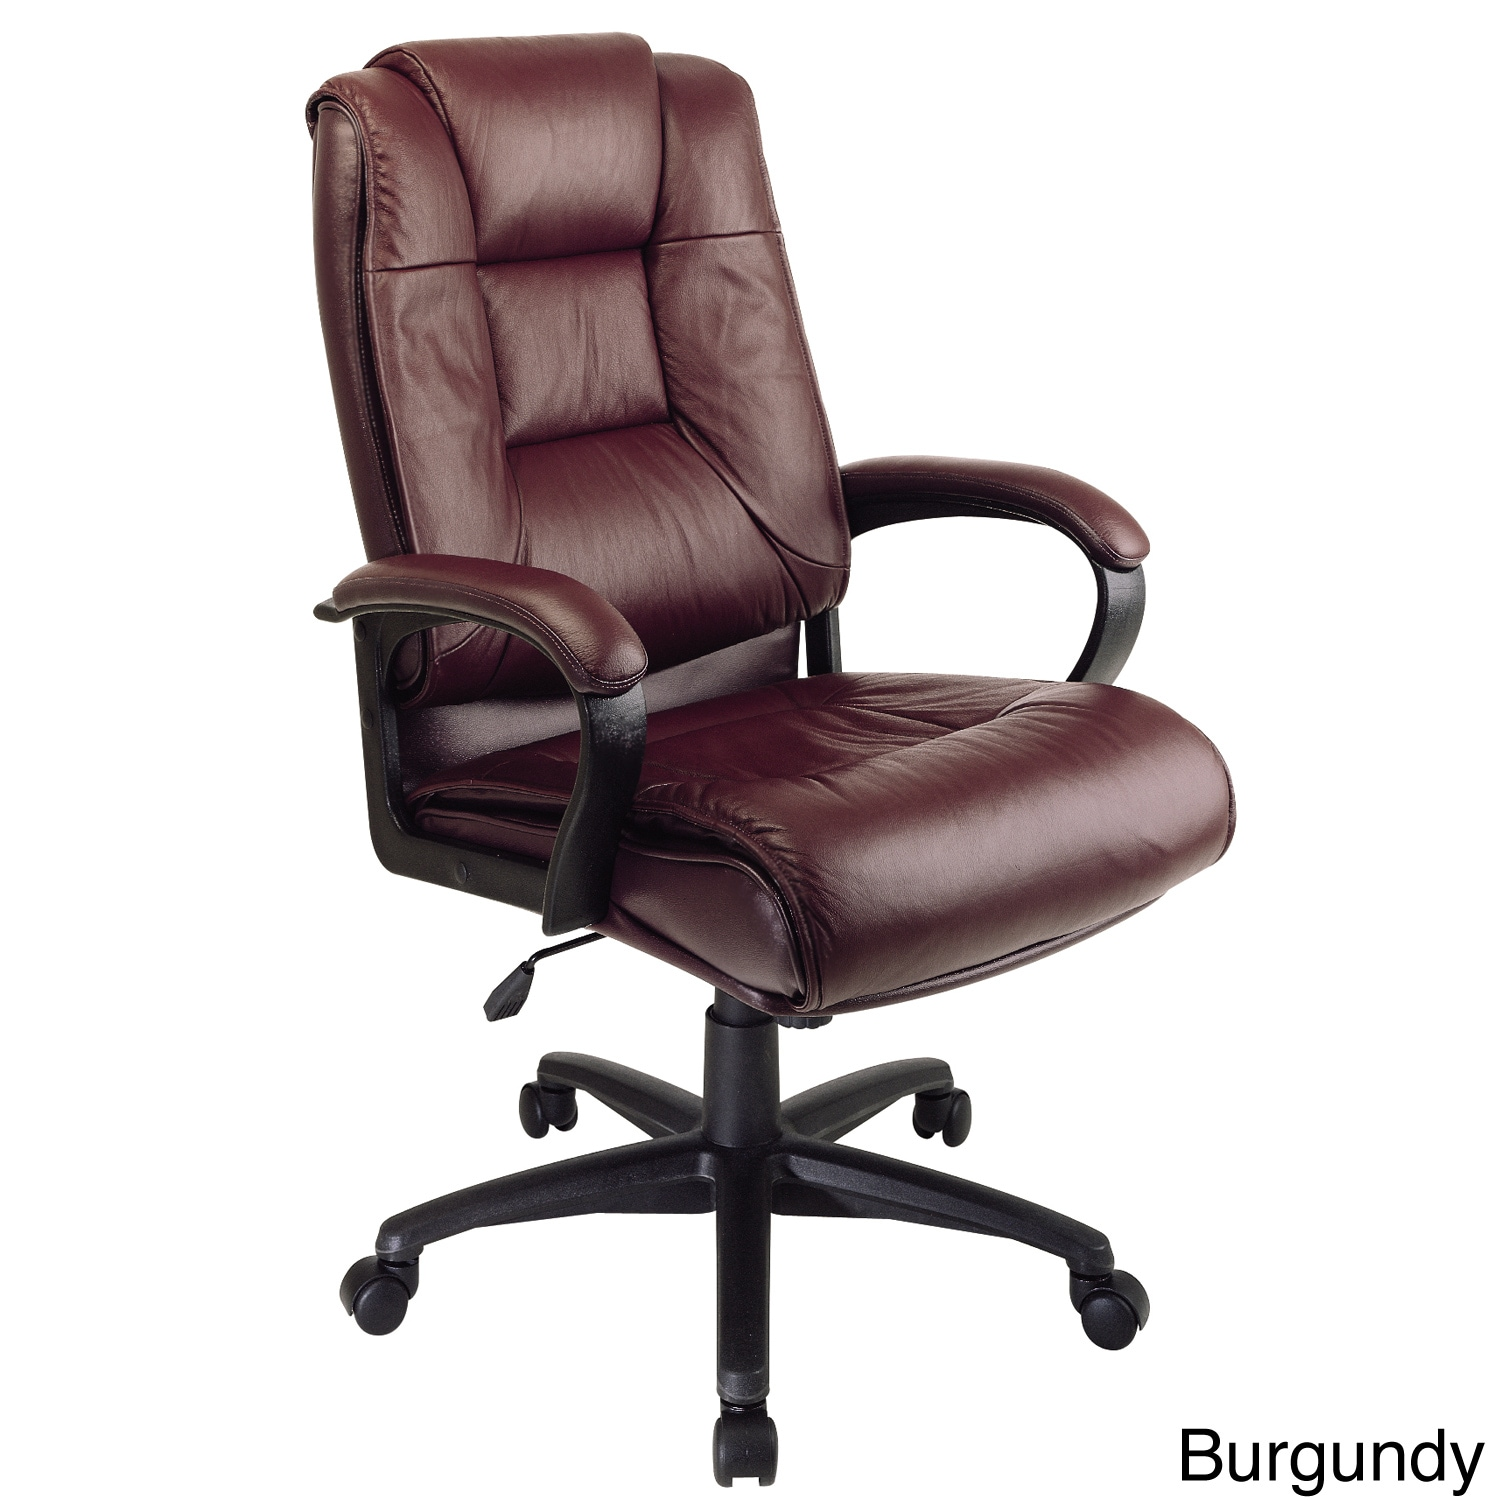 Executive Leather Chair Office Star Work Smart Deluxe Executive Leather Chair With Padded Loop Arms